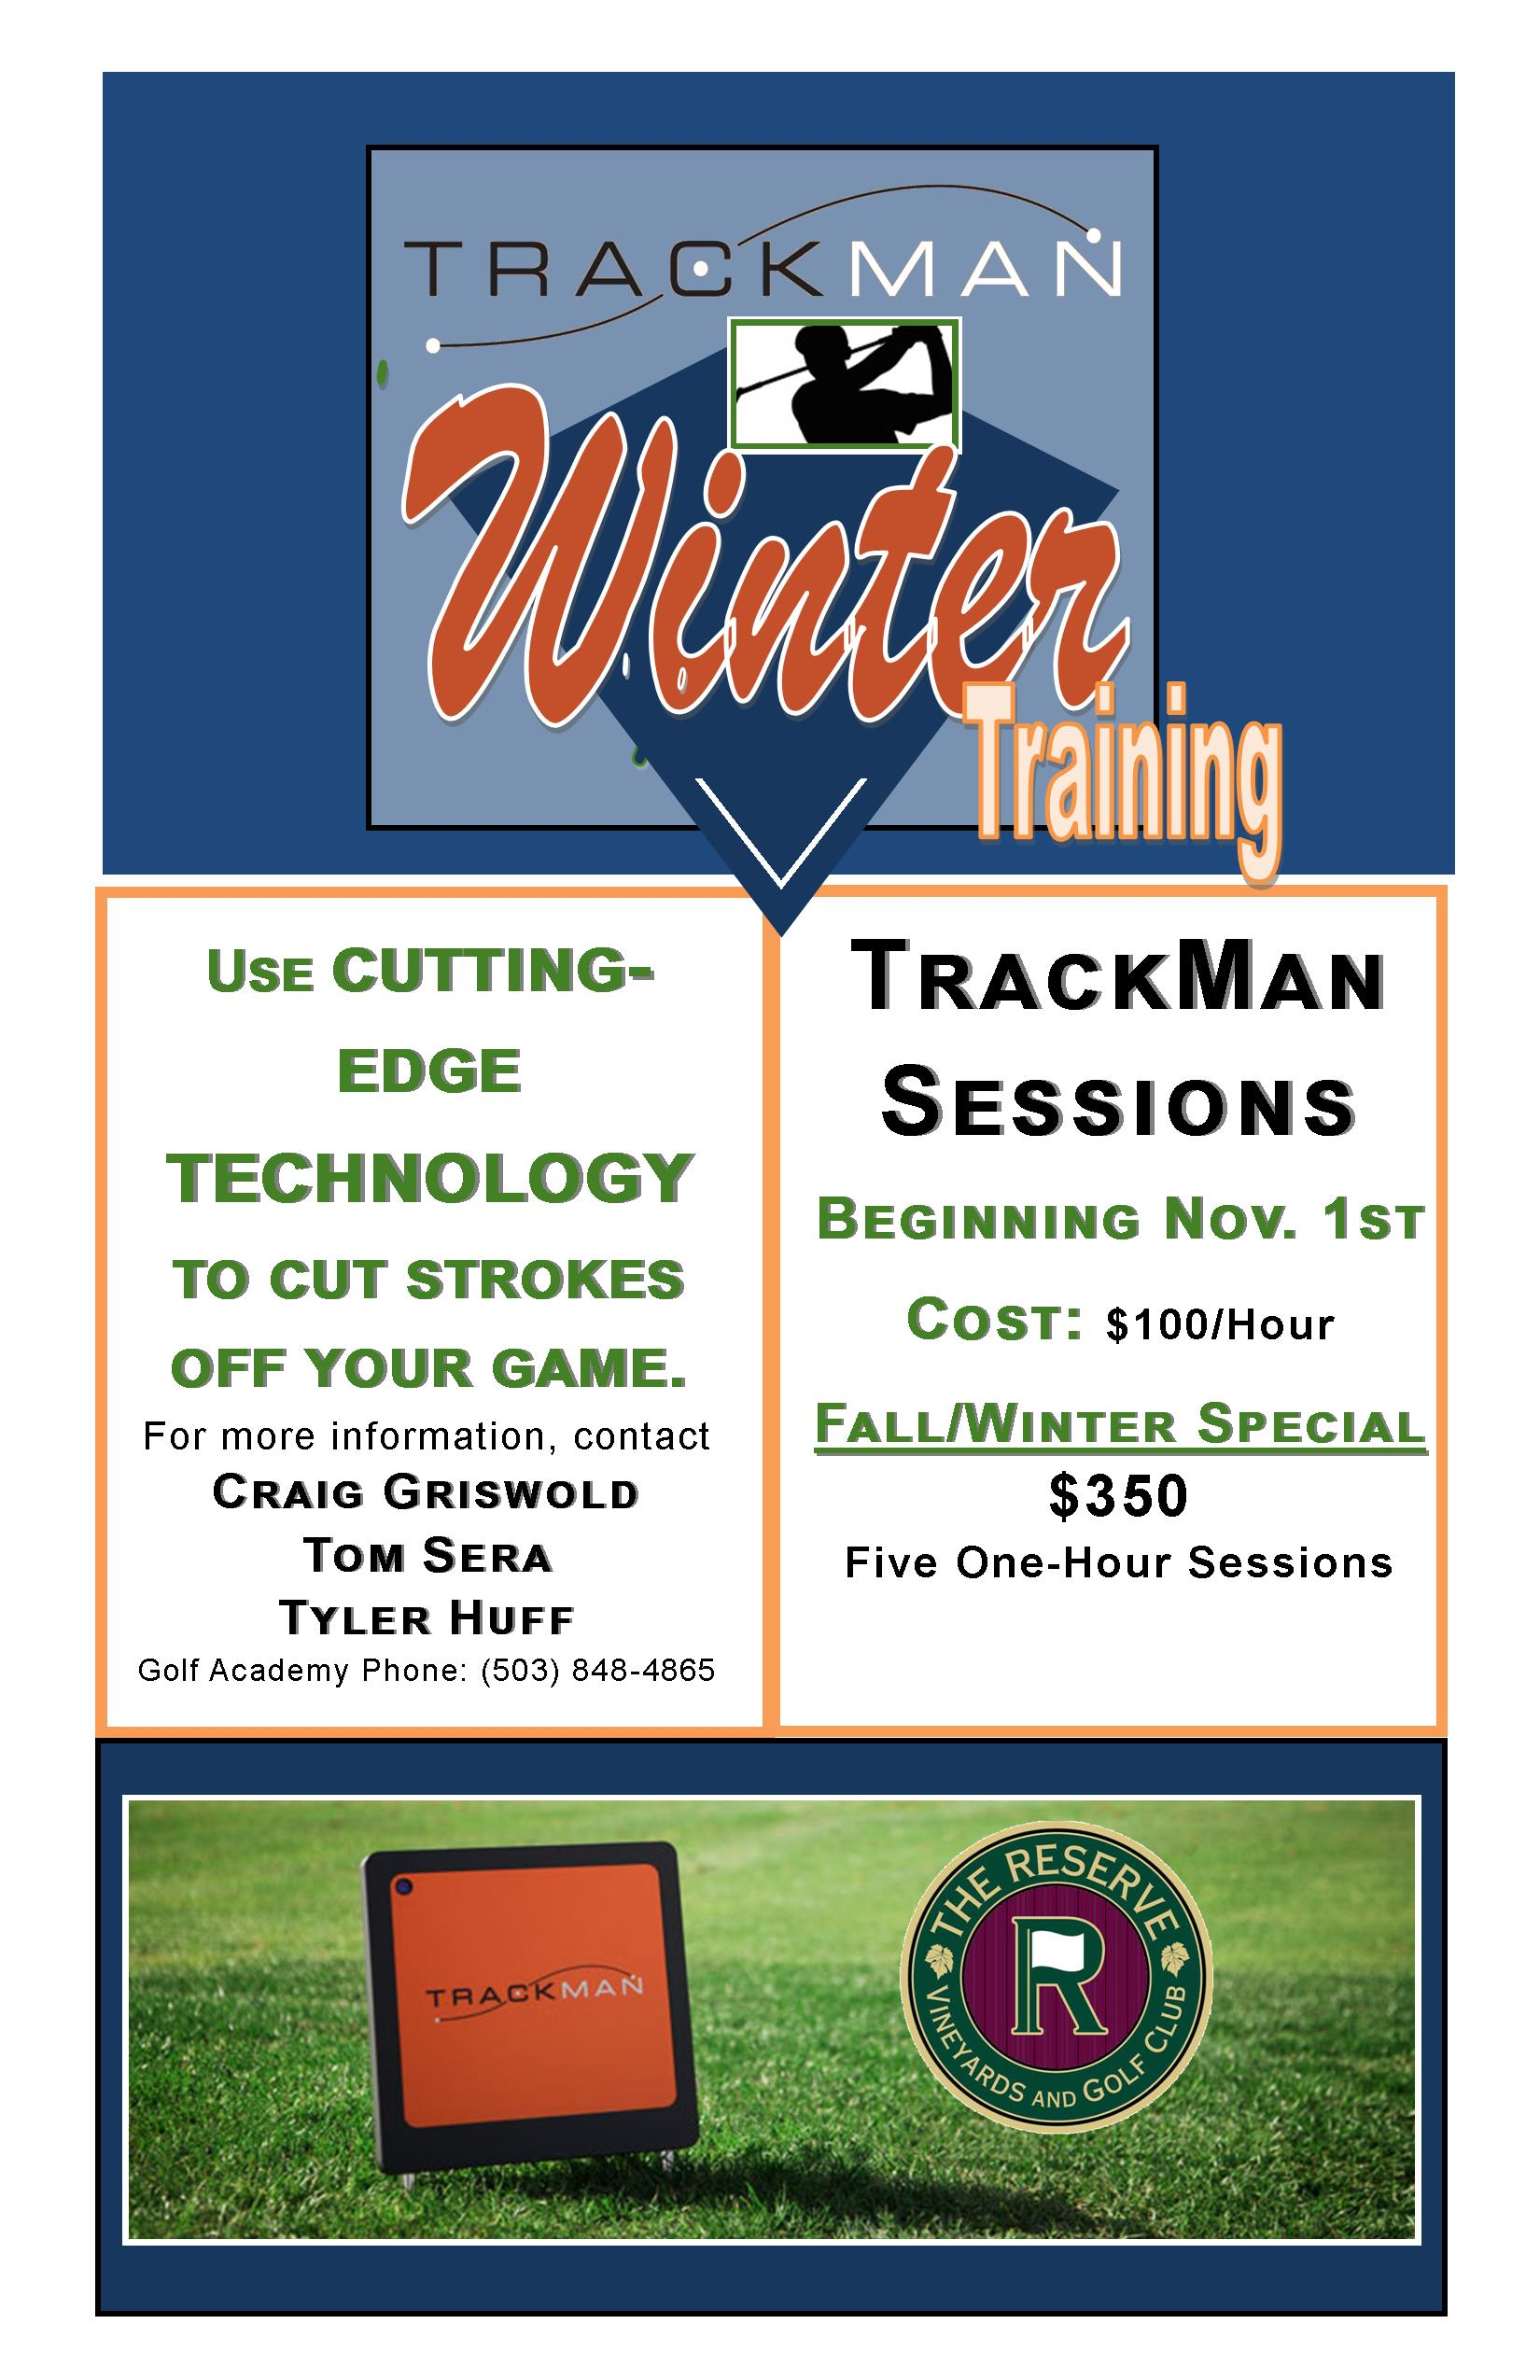 2018 TrackMan Winter Training 11x17 JPEG